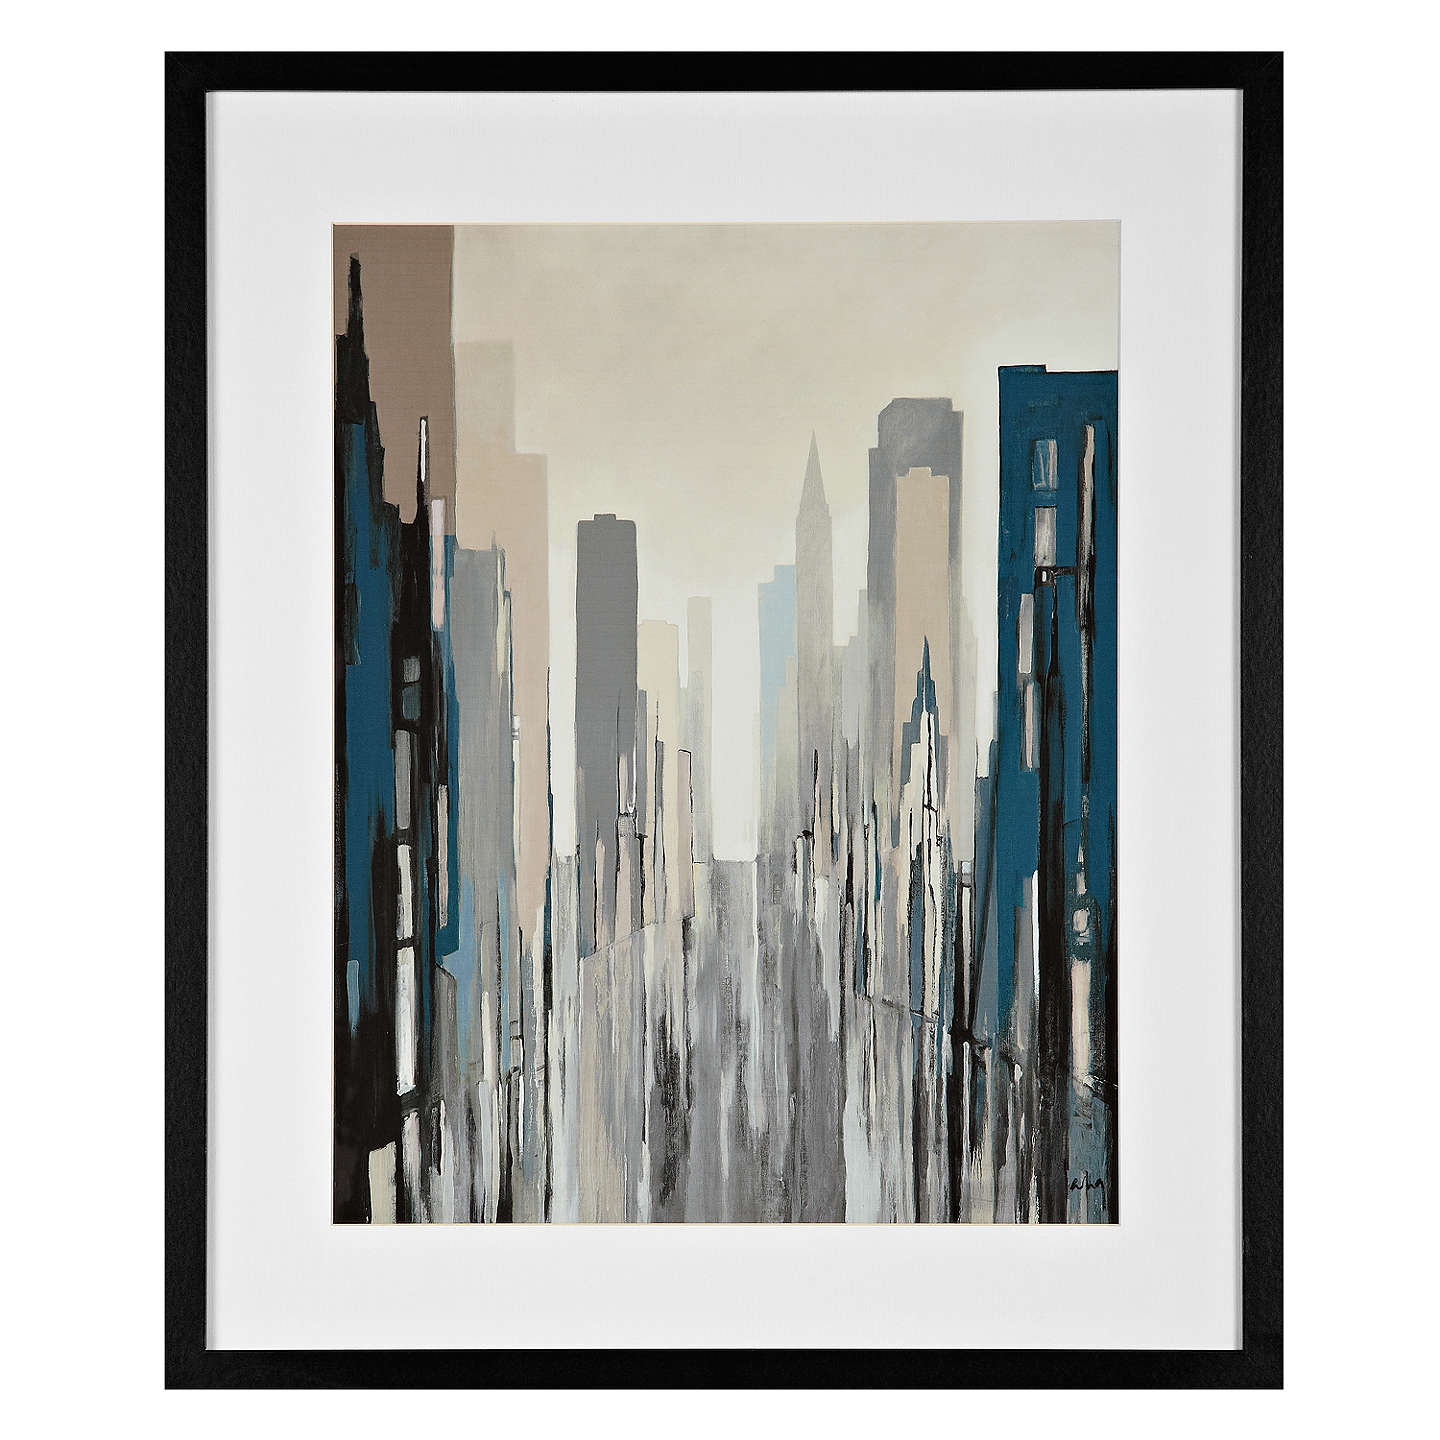 BuyGregory Lang - Metropolitan View Blue Framed Print, 59 x 49cm Online at johnlewis.com